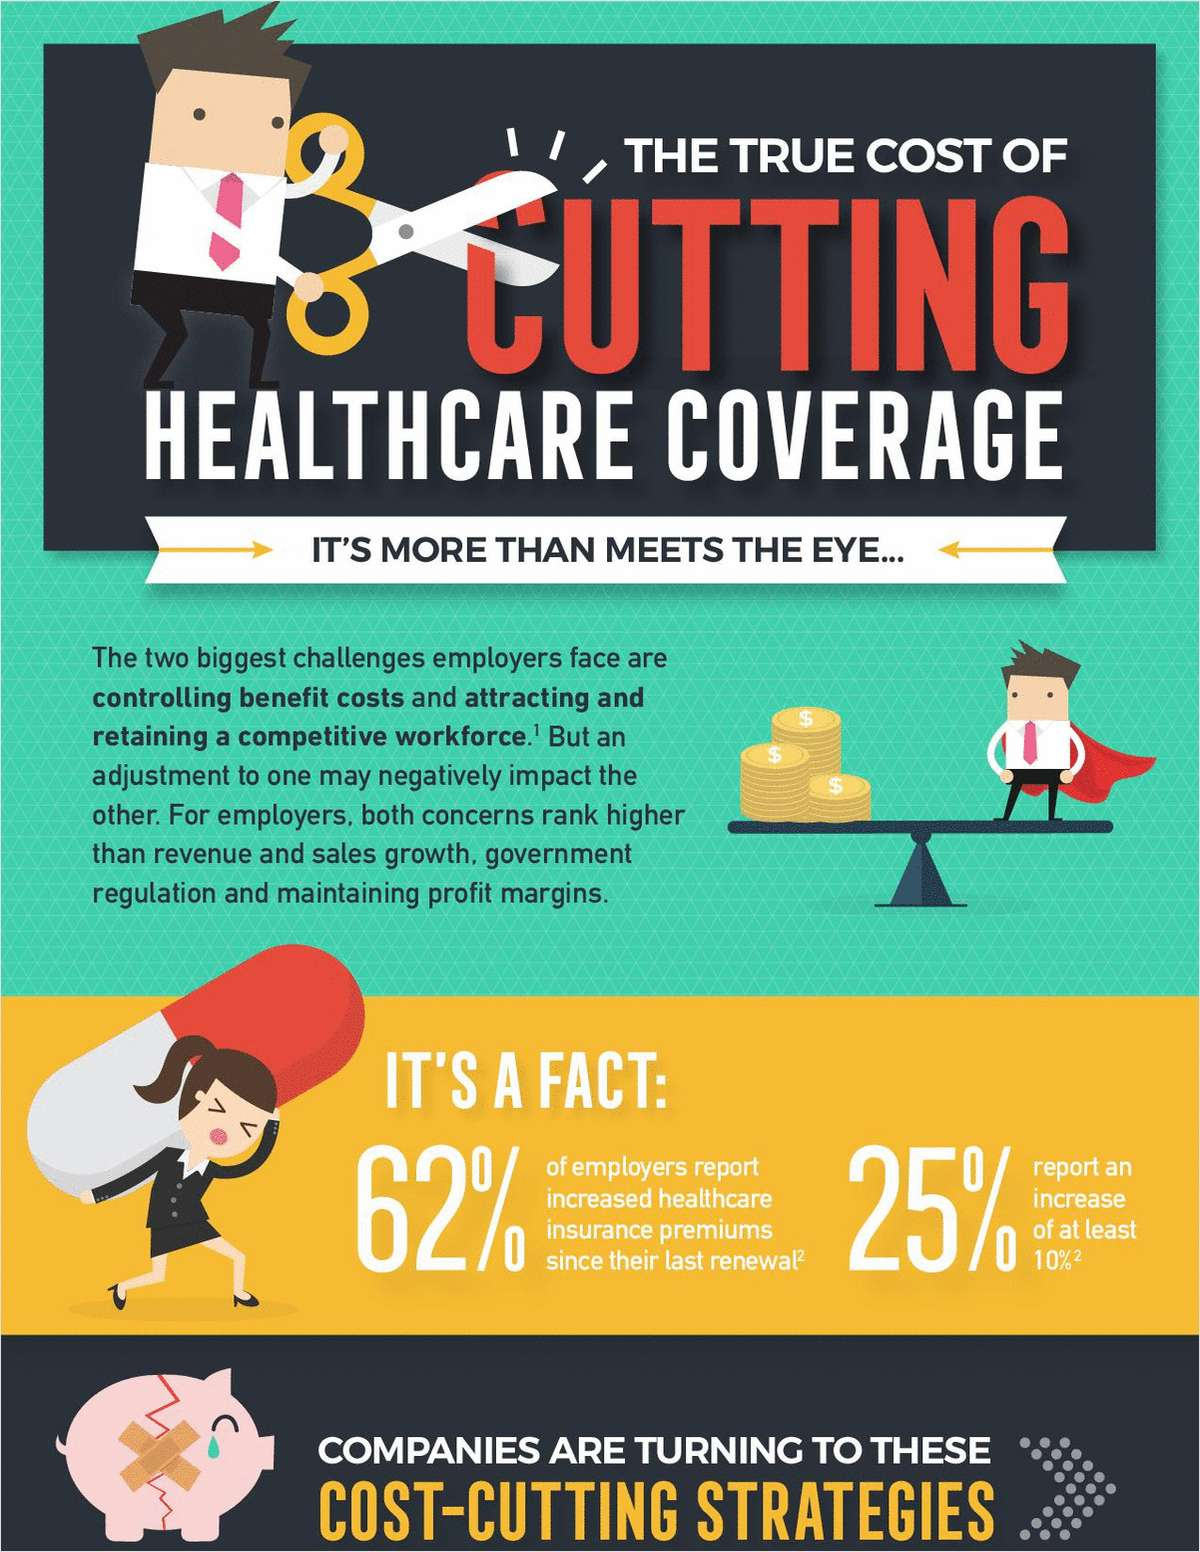 The True Cost of Cutting Healthcare Coverage